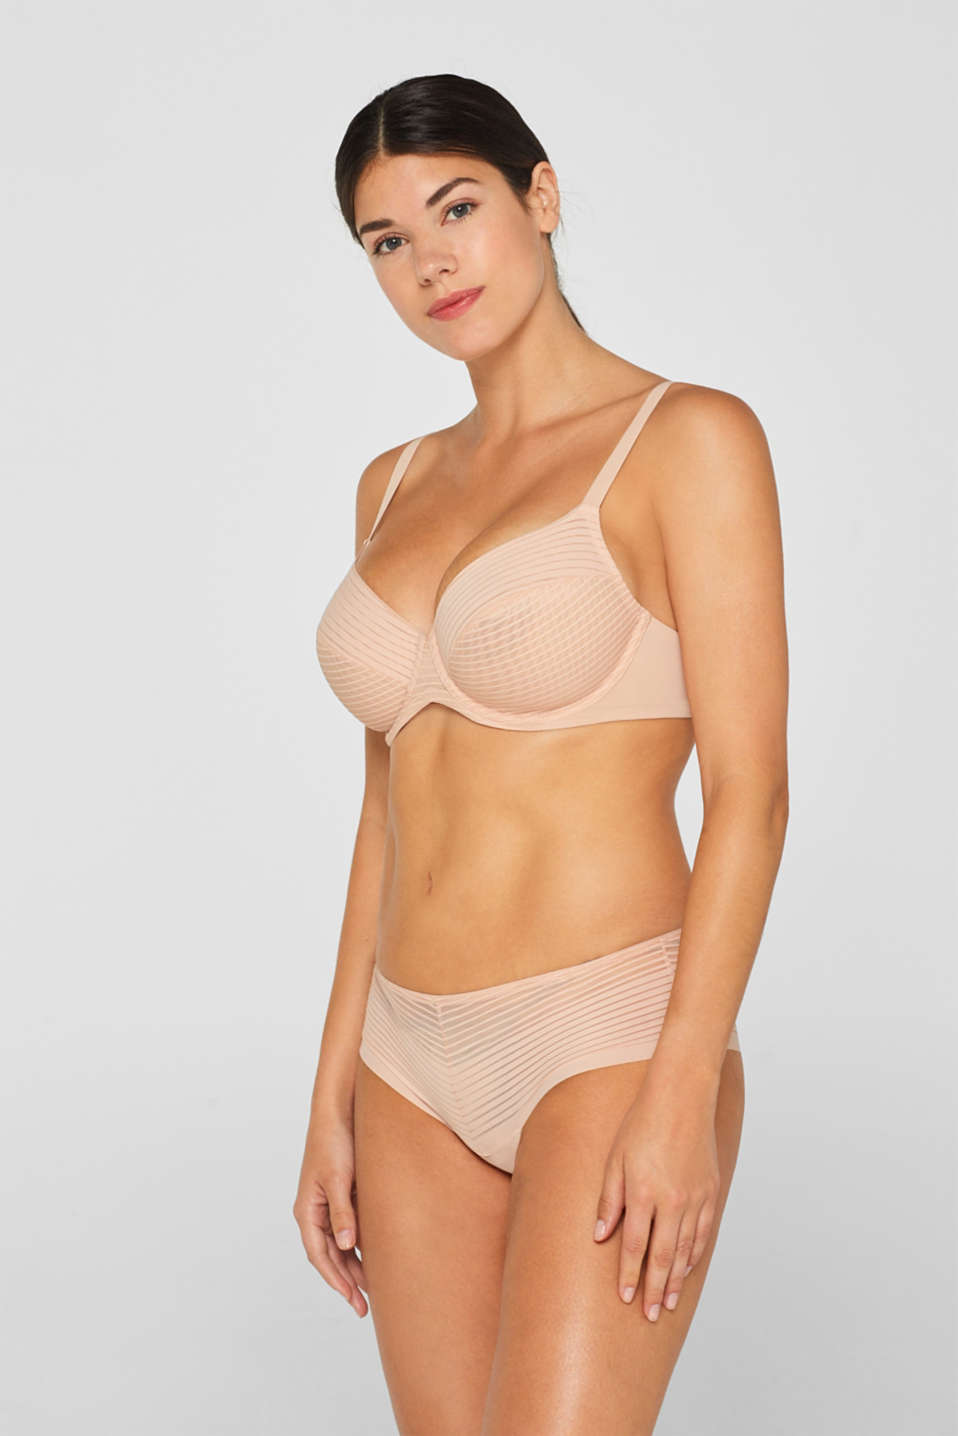 Esprit - NYE unpadded underwire bra for large cup sizes